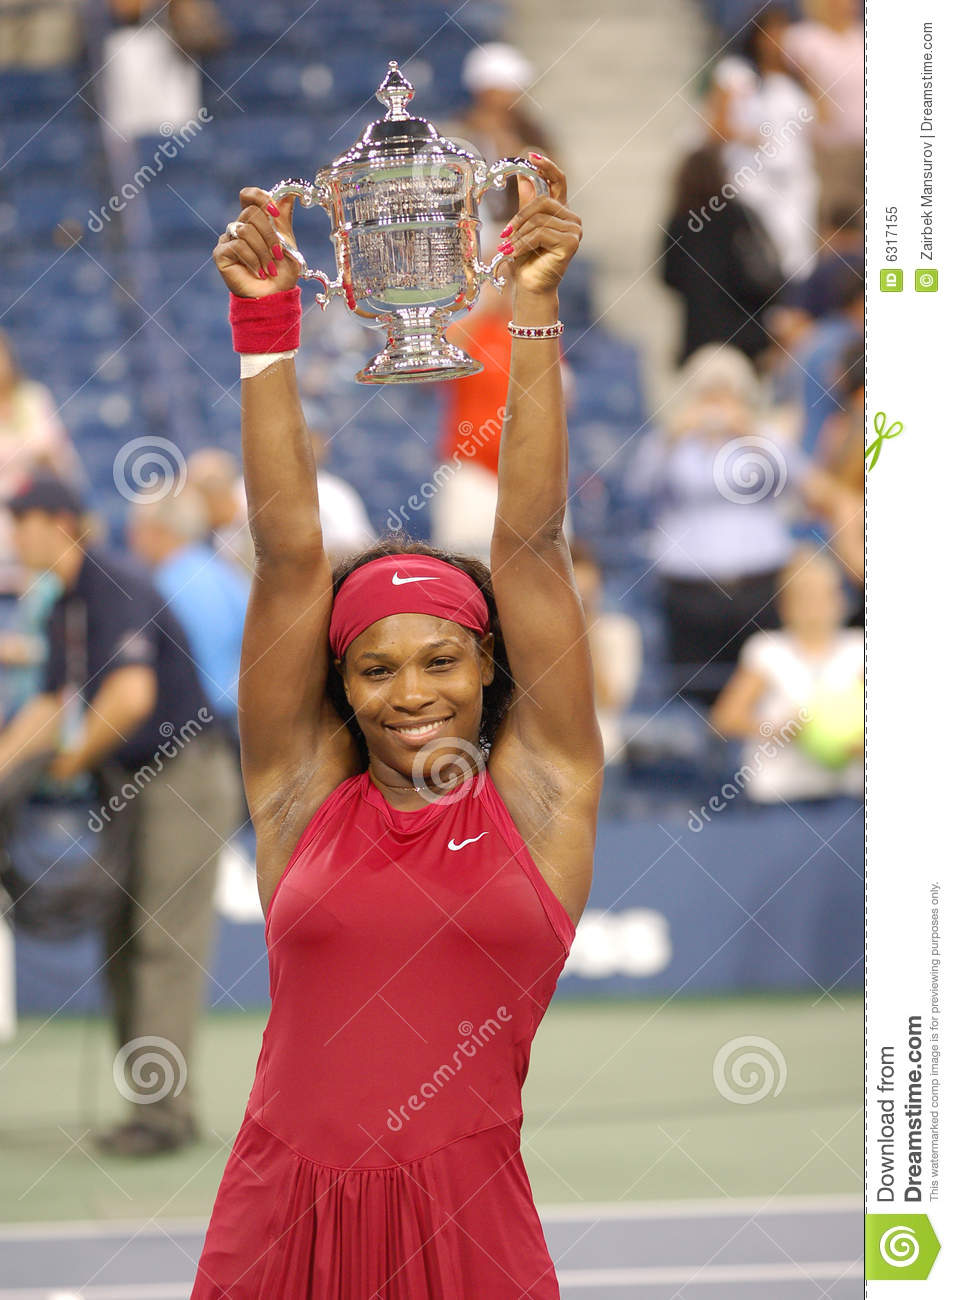 O vencedor de Williams Serena dos E.U. abre 2008 (6)